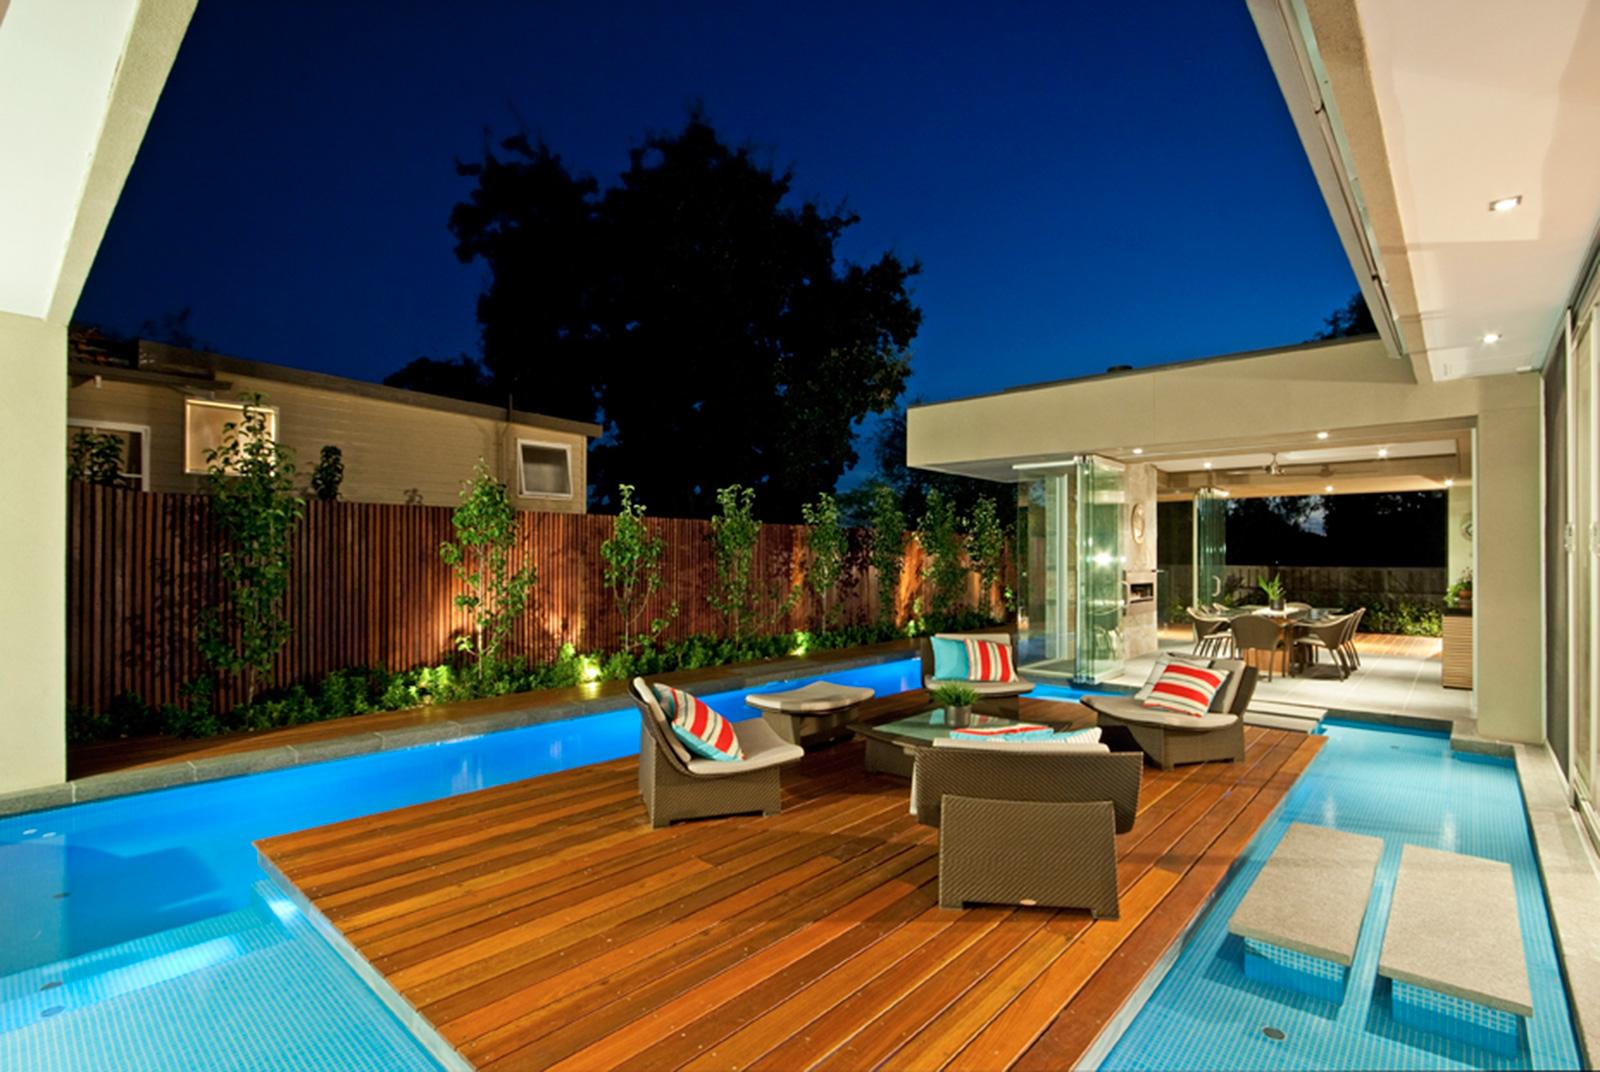 Modernization of Swimming Pool Designs for Homes and ...